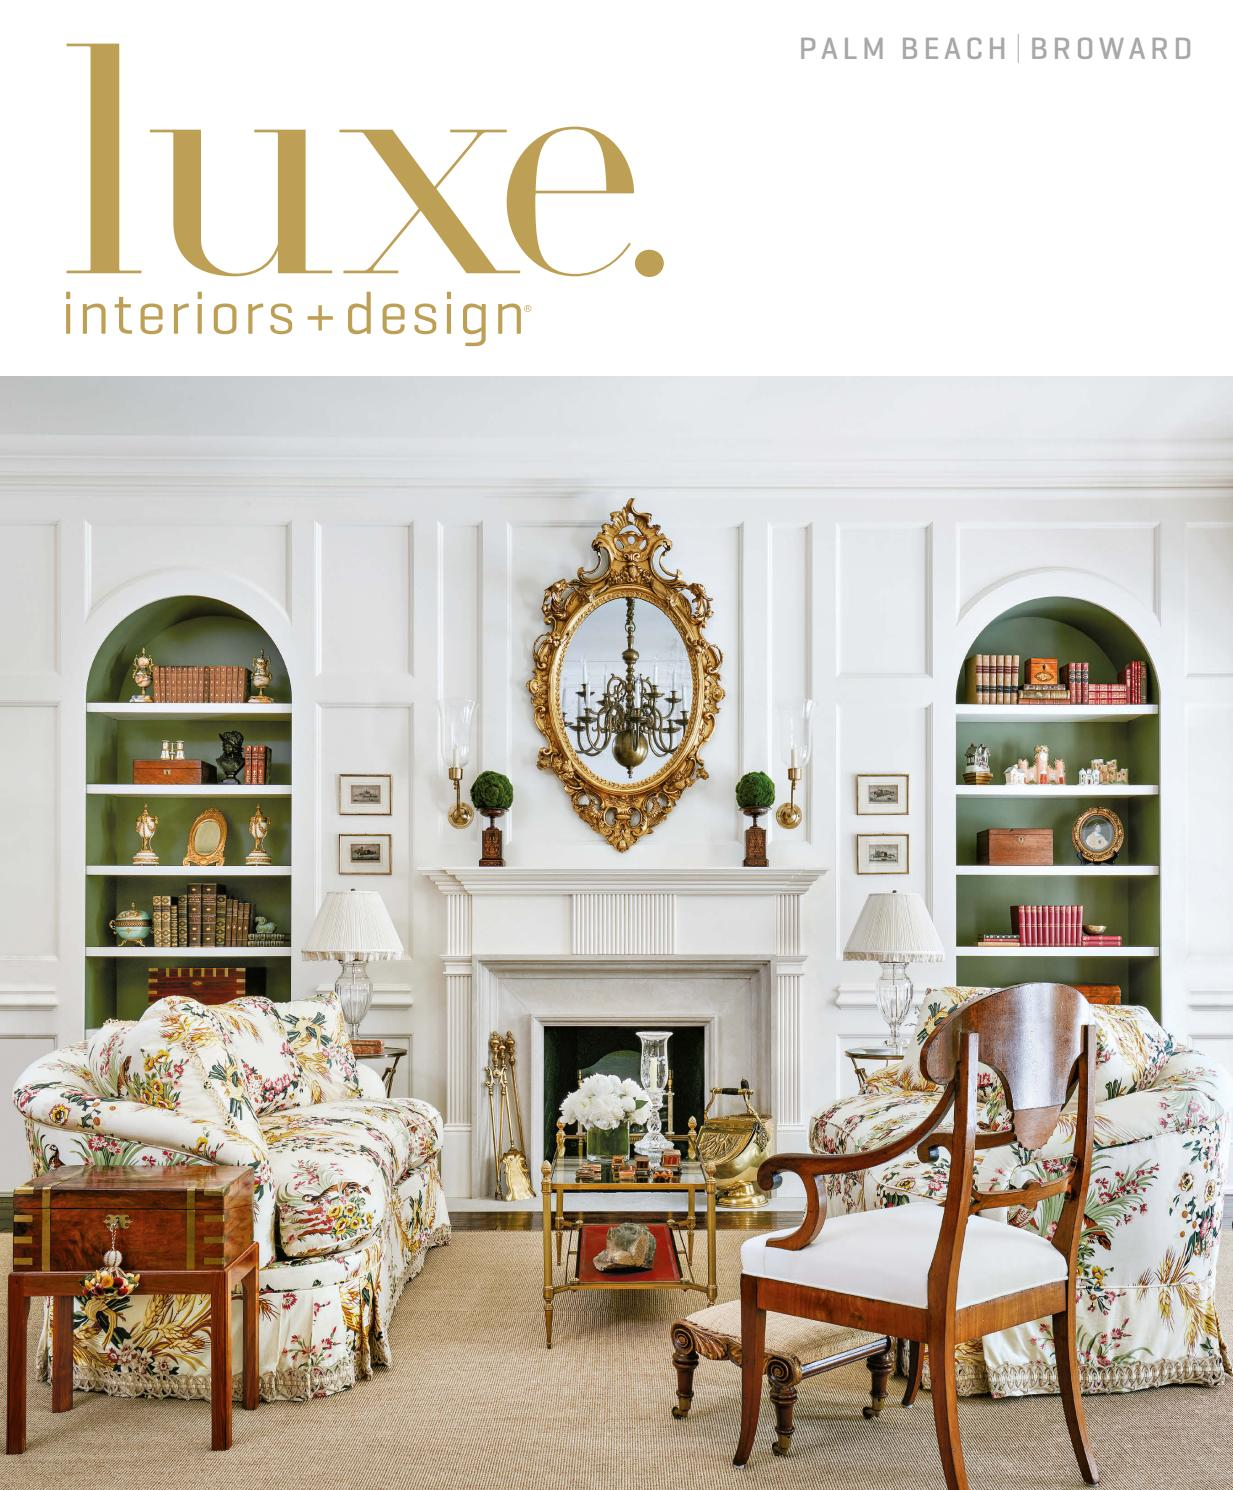 luxe magazine palm beach sandow issuu page miles redd kidney accent table cream and wood coffee round wicker with glass top hafley target ashley furniture bedroom sets wooden